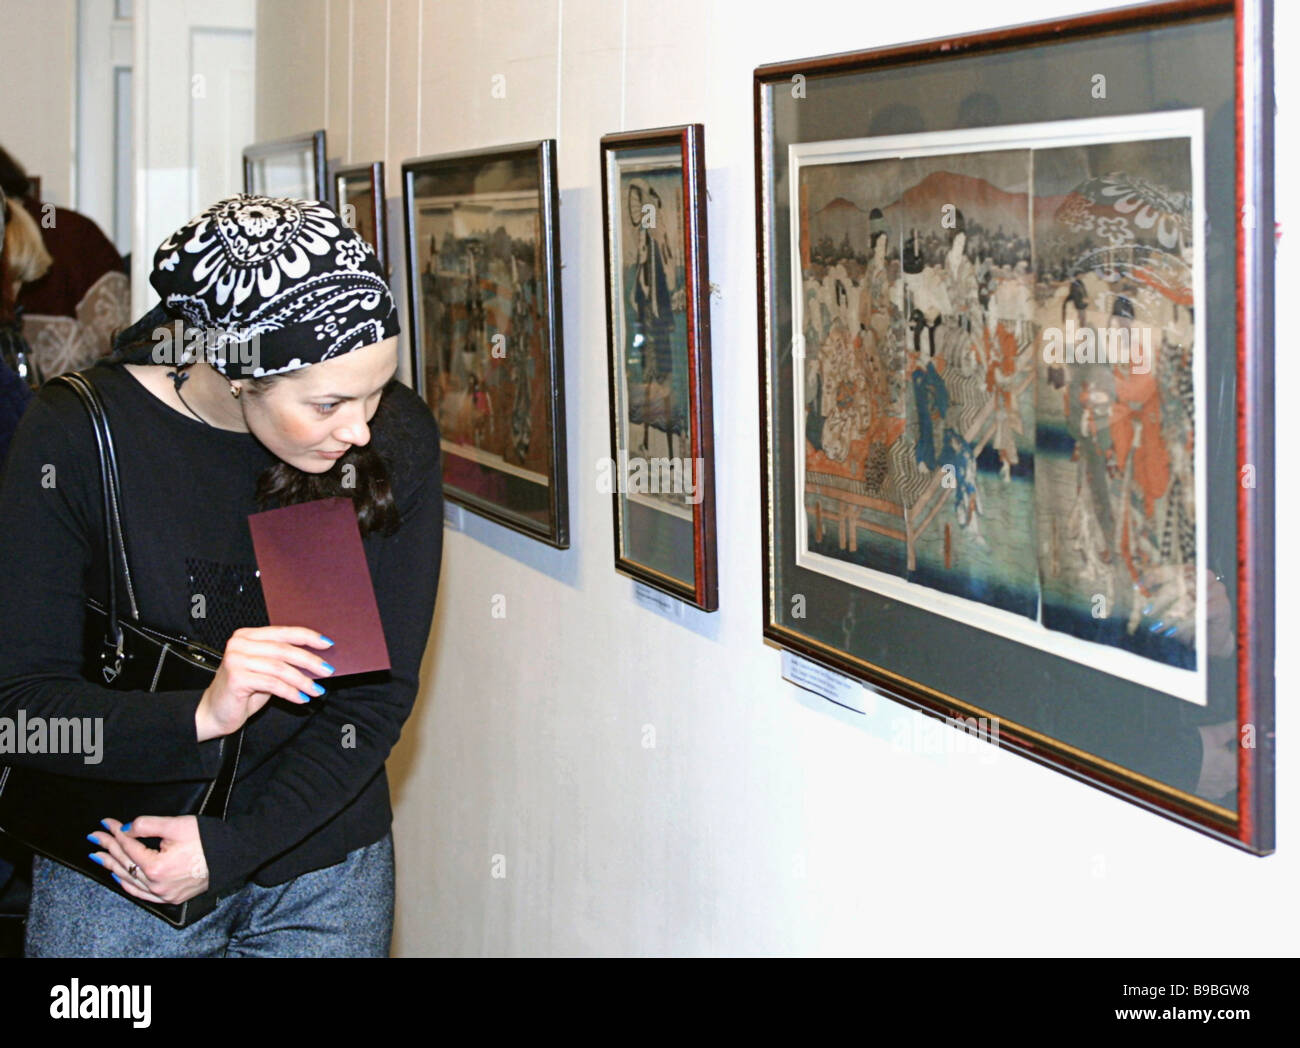 The Japanese Ukiyo e Art of the 2nd Half of the 19th Century exhibition in the Tseretely Art Gallery during the - Stock Image